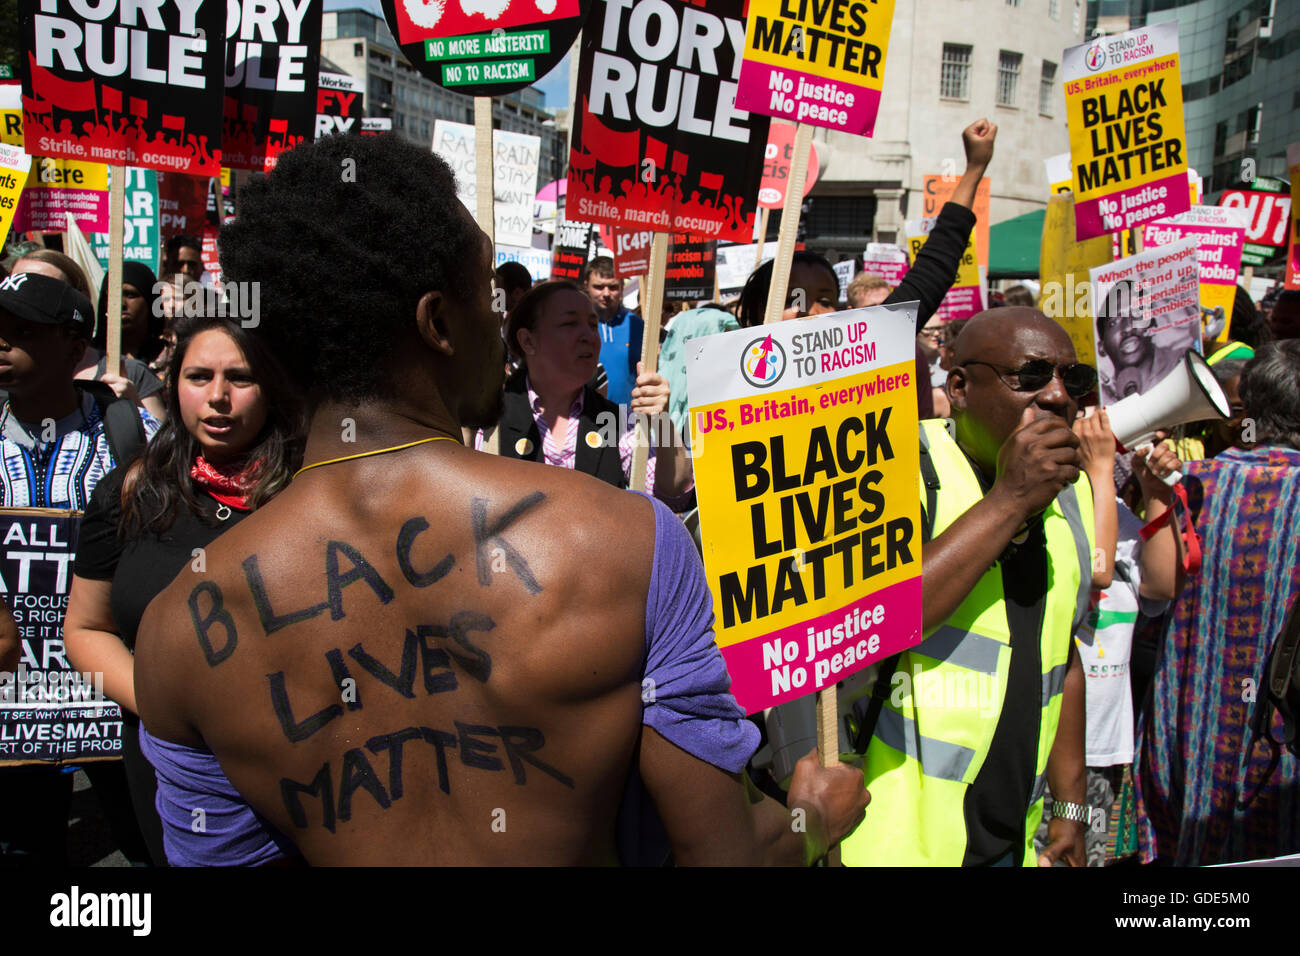 London, UK. 16th July, 2016. Black Lives Matter supporters at the Peoples Assembly demonstration: No More Austerity - Stock Image